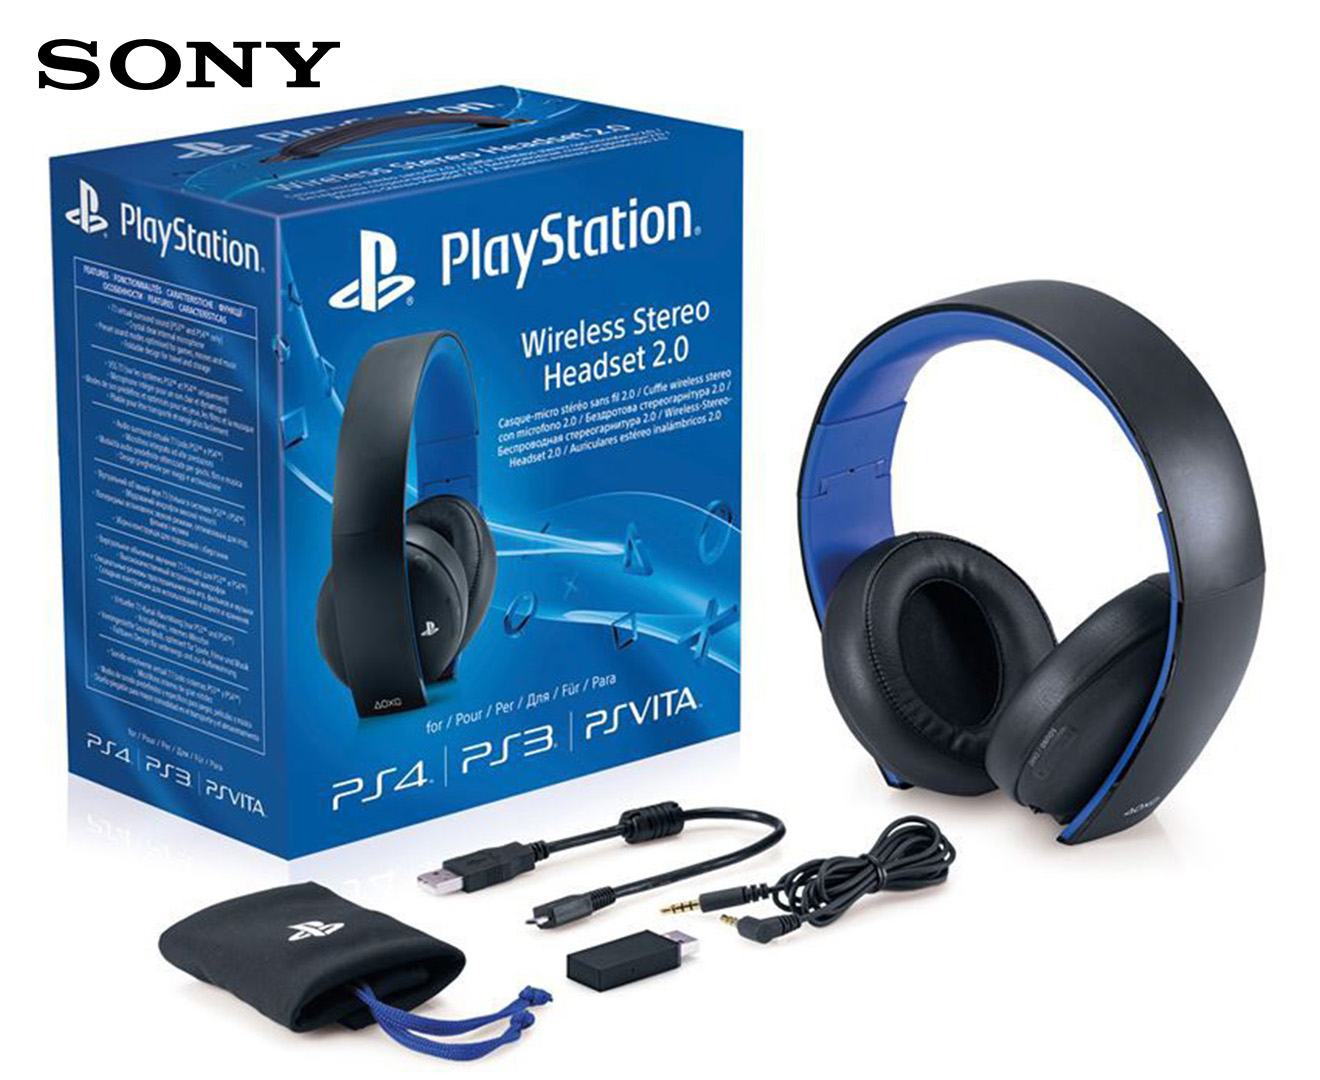 sony wireless stereo headset 2 0 black scoopon shopping. Black Bedroom Furniture Sets. Home Design Ideas